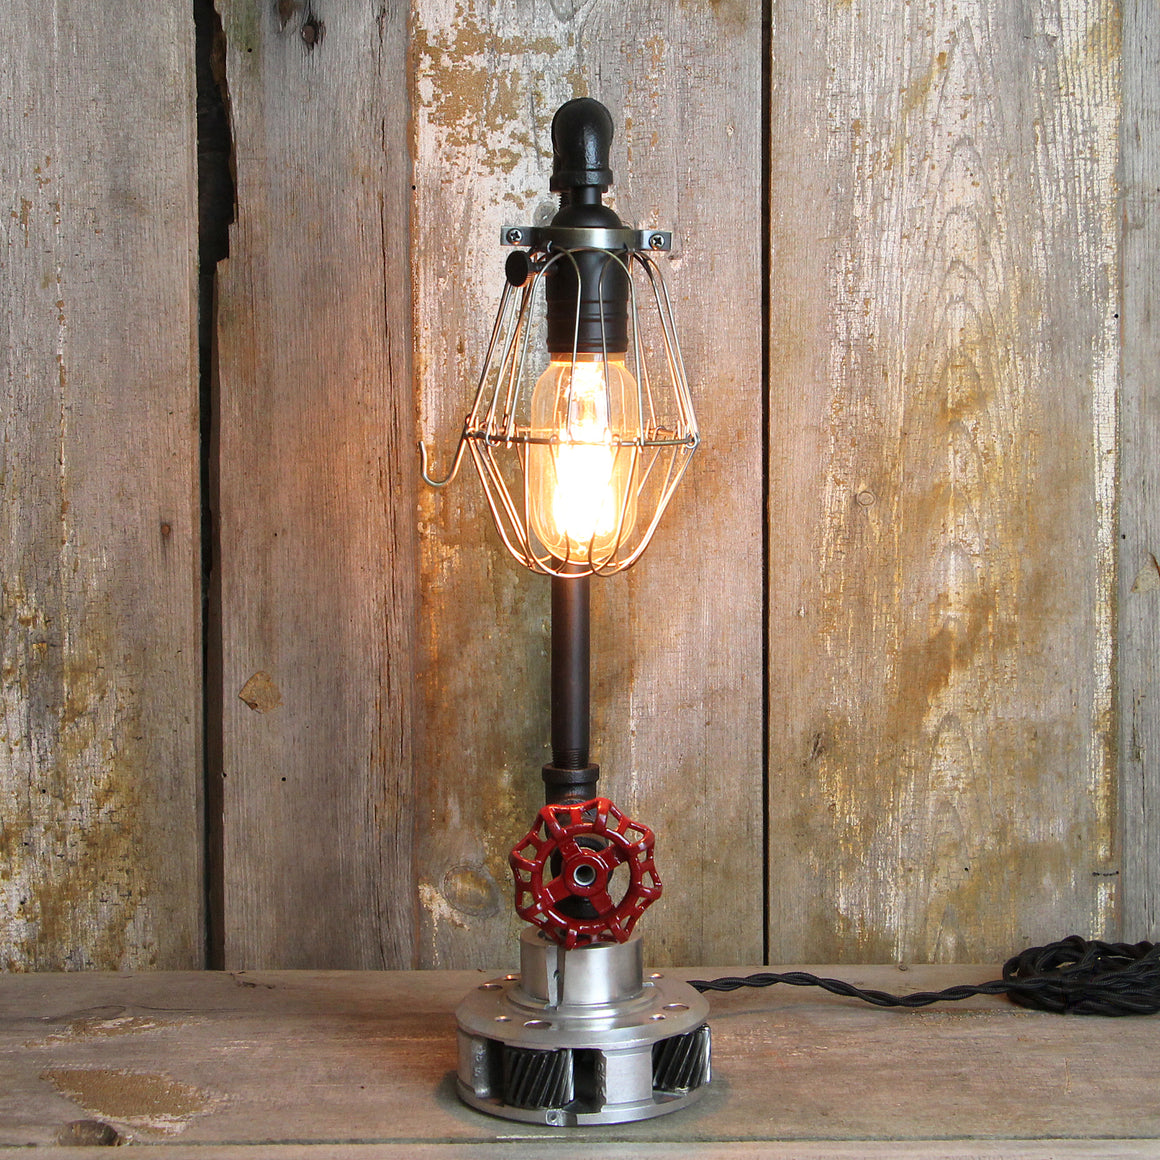 Steampunk Table Lamp Industrial Styling Red Handel & Gear Base #55 - The Lighting Works